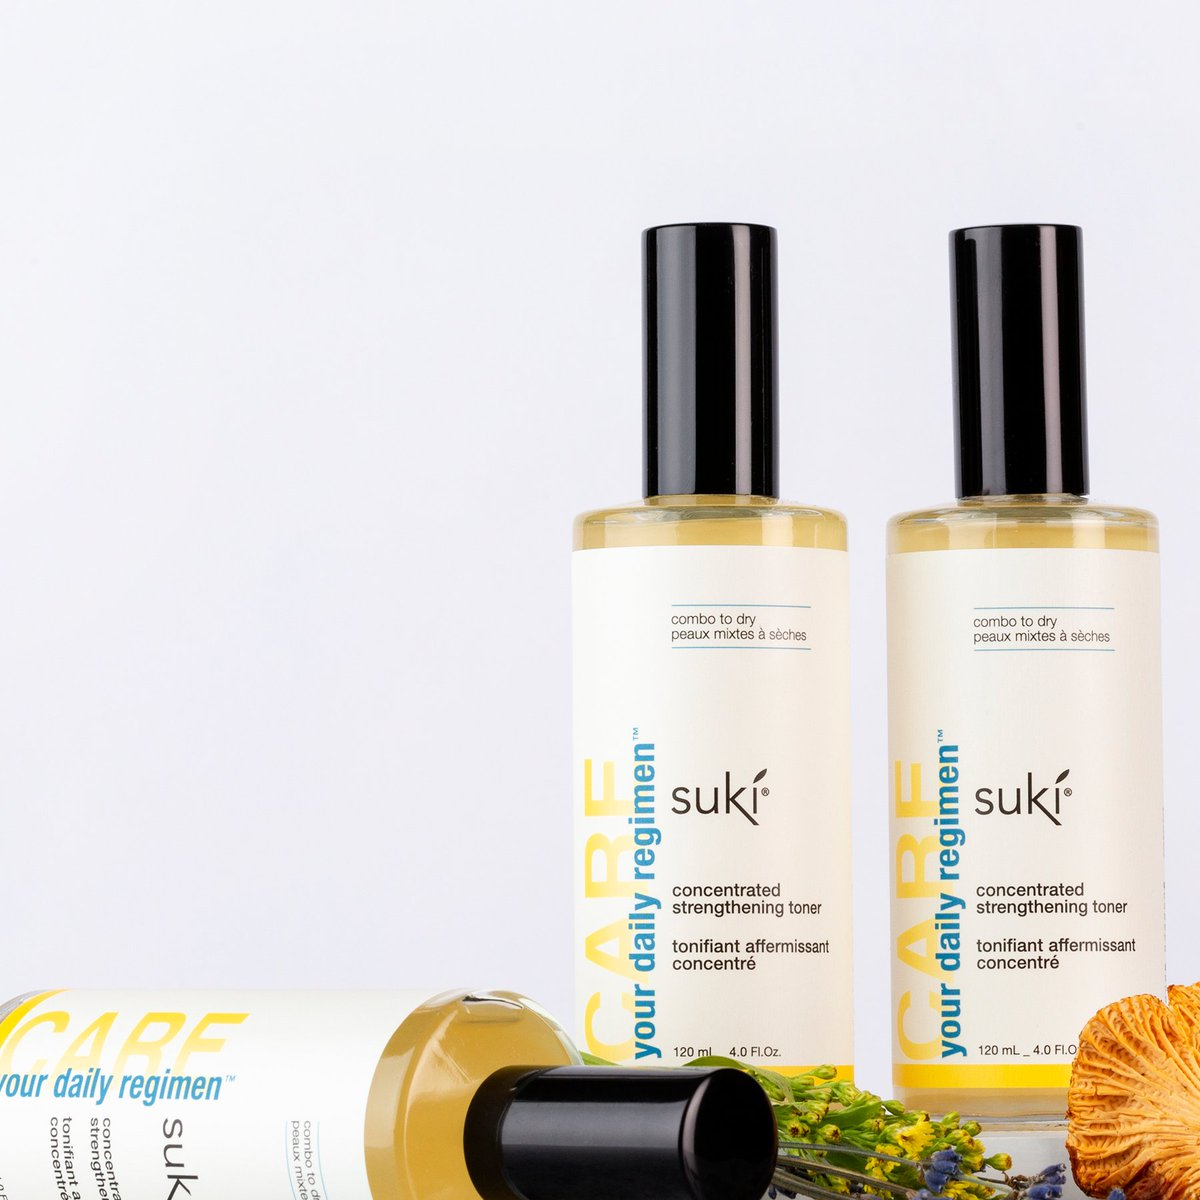 Packed with vitamins & nutrients it is easy to see why this is a beloved toner in suki's care line. Reduces the appearance of fine lines & wrinkles with the help of shitake and reishi mushrooms! Don't mist out on radiant & glowing skin ✨ https://t.co/bqnHt1yLOJ